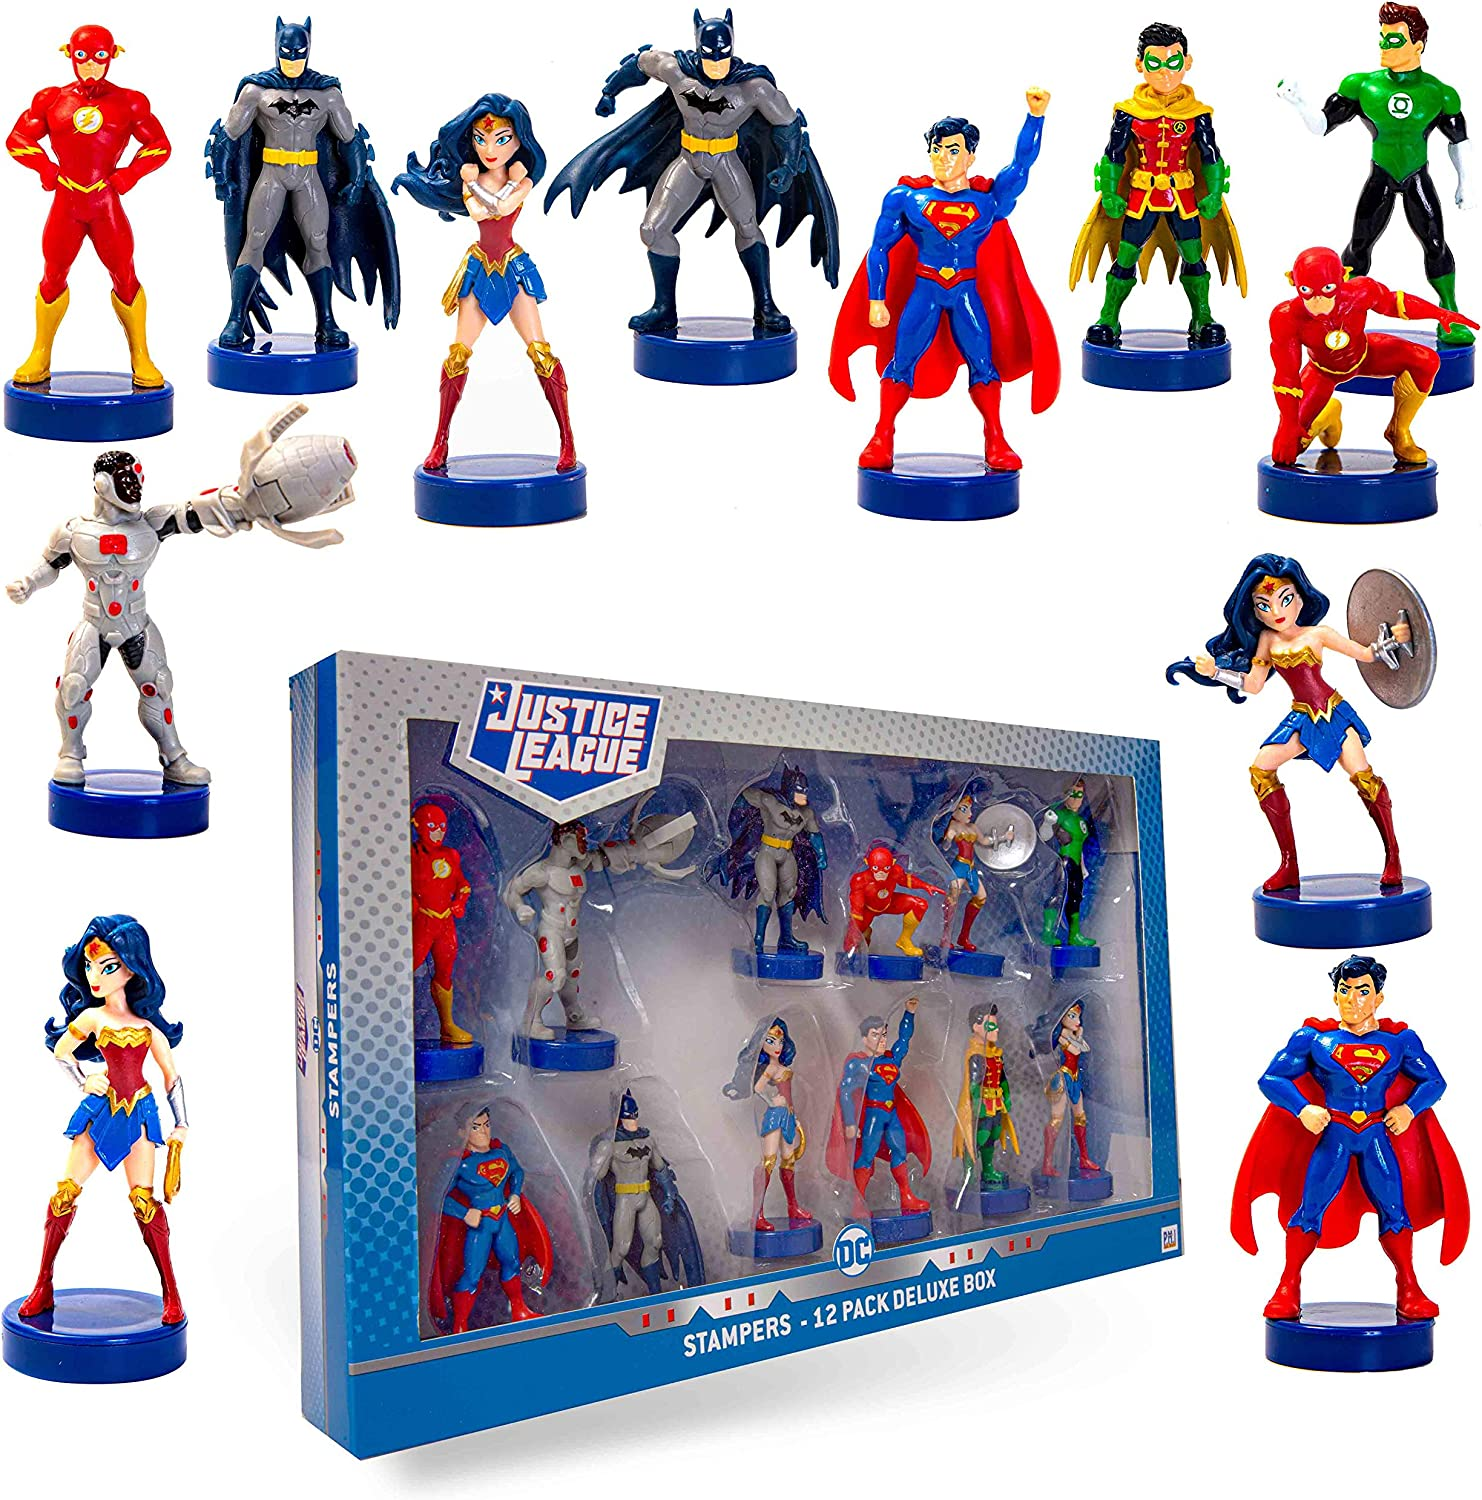 Justice League Stampers, 12-Pack – Self-Inking DC Toys, Party Decor, Cake Toppers, Action Figures – Batman, Wonder Woman, Superman, Robin, Flash, and More by PMI, 2.4 in, Ages 3+